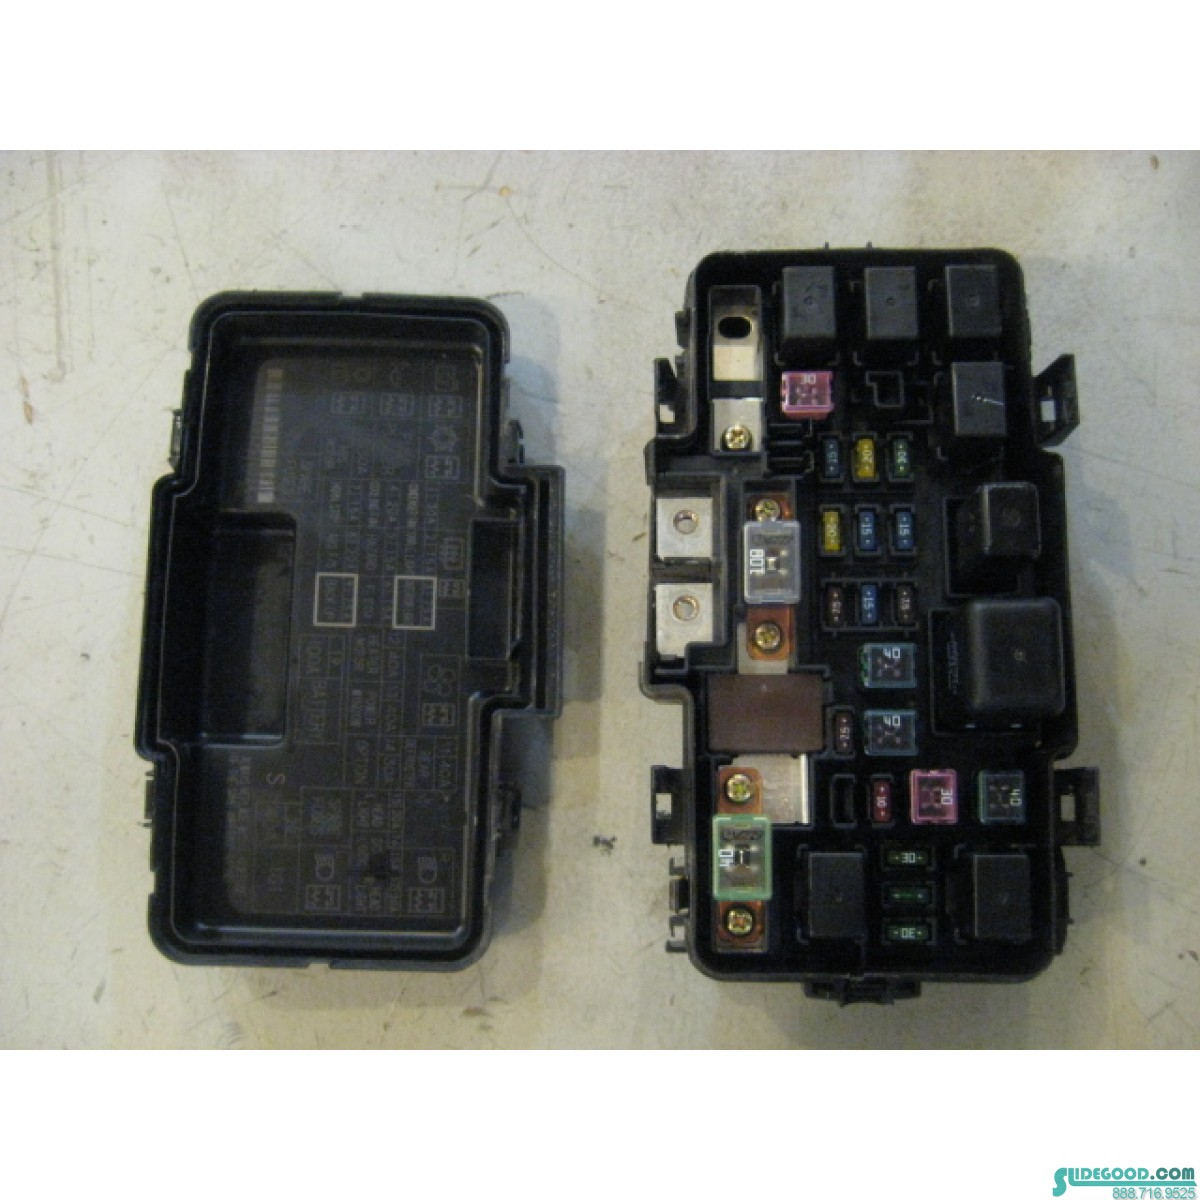 99 00 01 02 03 acura tl under hood fuse box ebay 03 acura rsx engine bay fuse box r8498 acura rsx under hood fuse box diagram